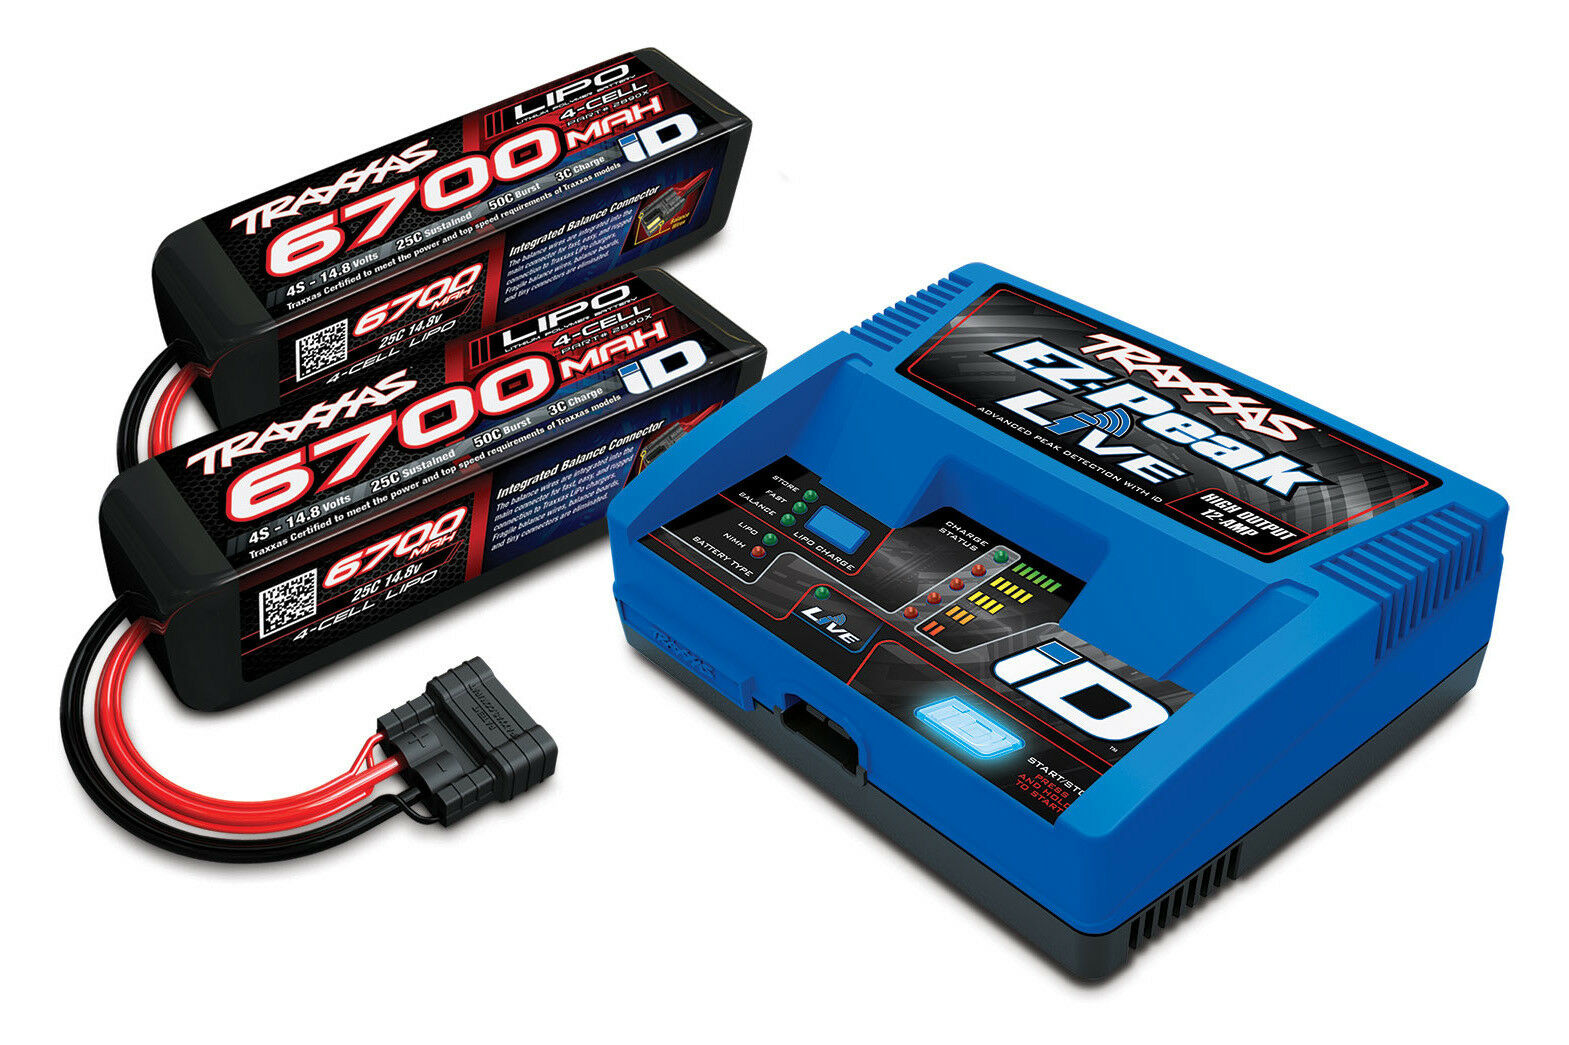 (Combo) Traxxas 2993 4s Battery 100w Charger Combo 2x 2890x + 1x 2971